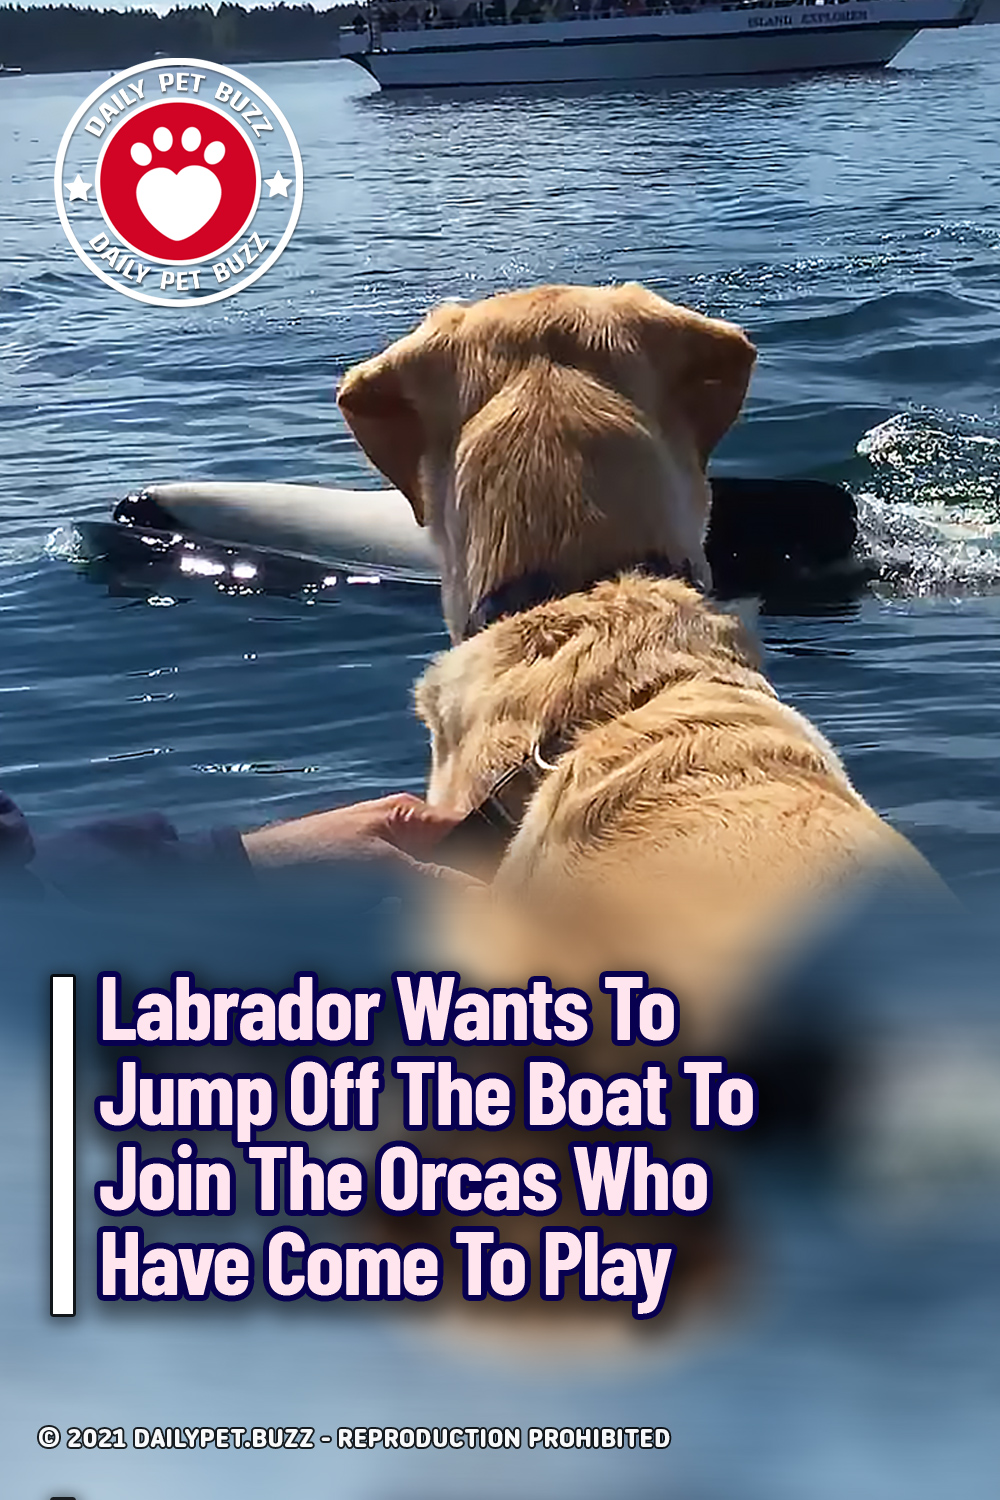 Labrador Wants To Jump Off The Boat To Join The Orcas Who Have Come To Play